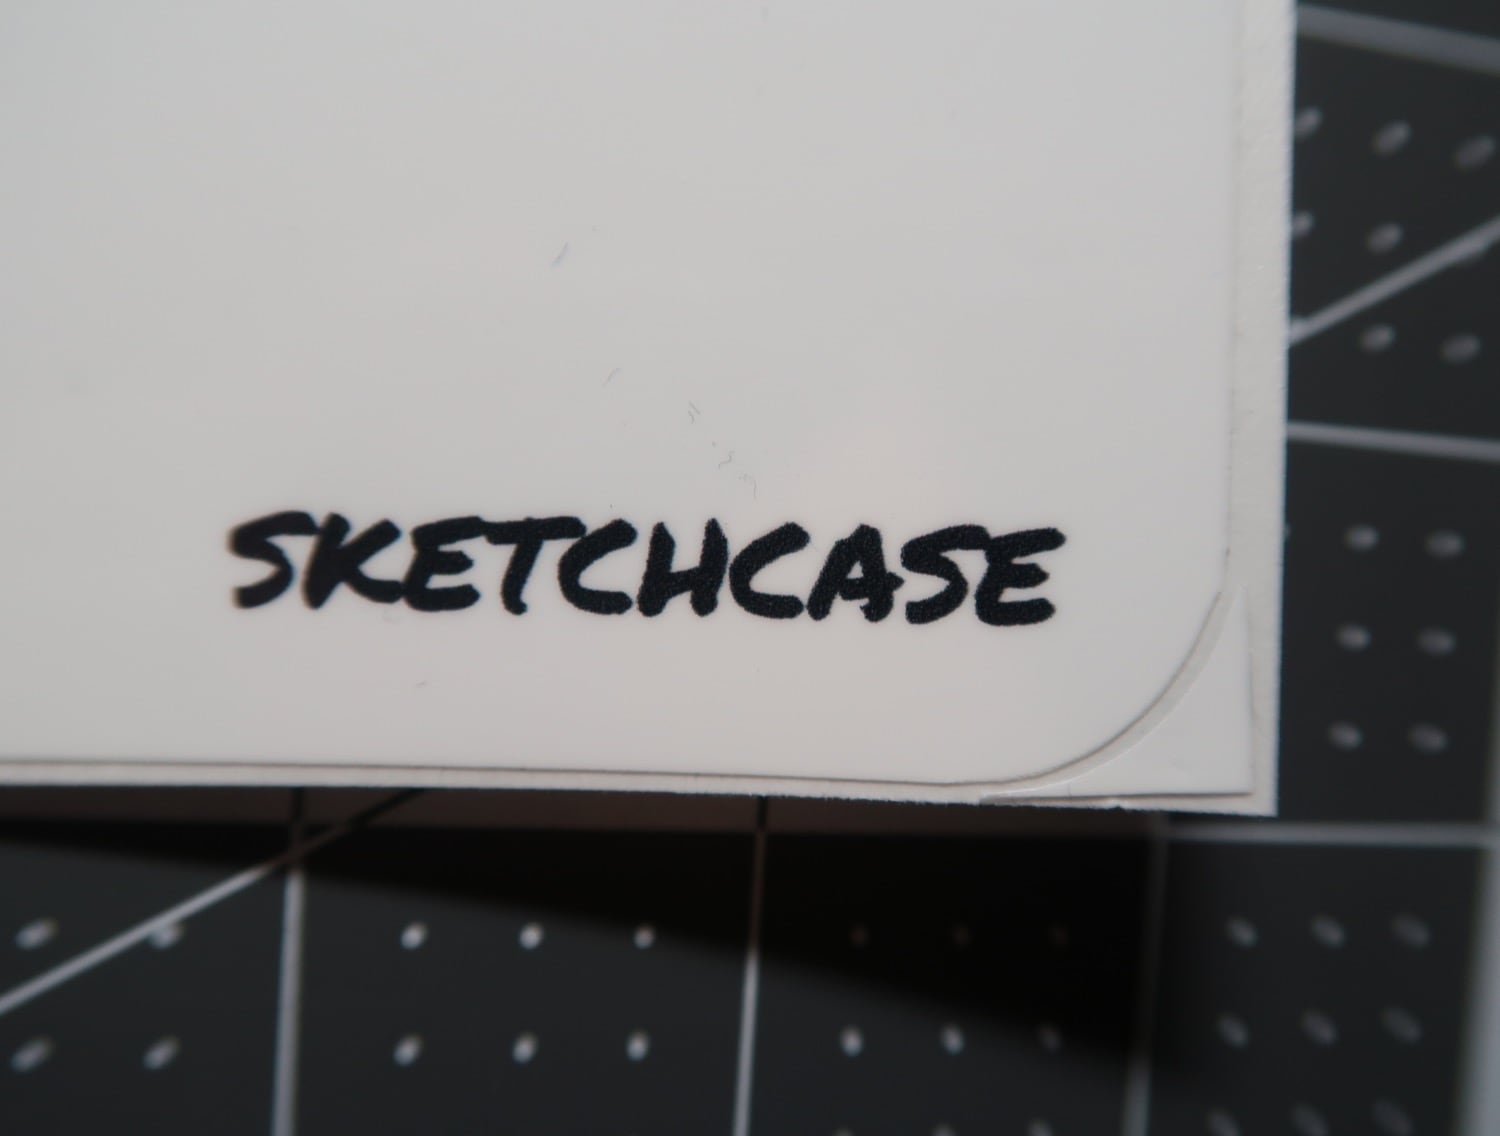 Cut corner of Sketchcase whiteboard cover